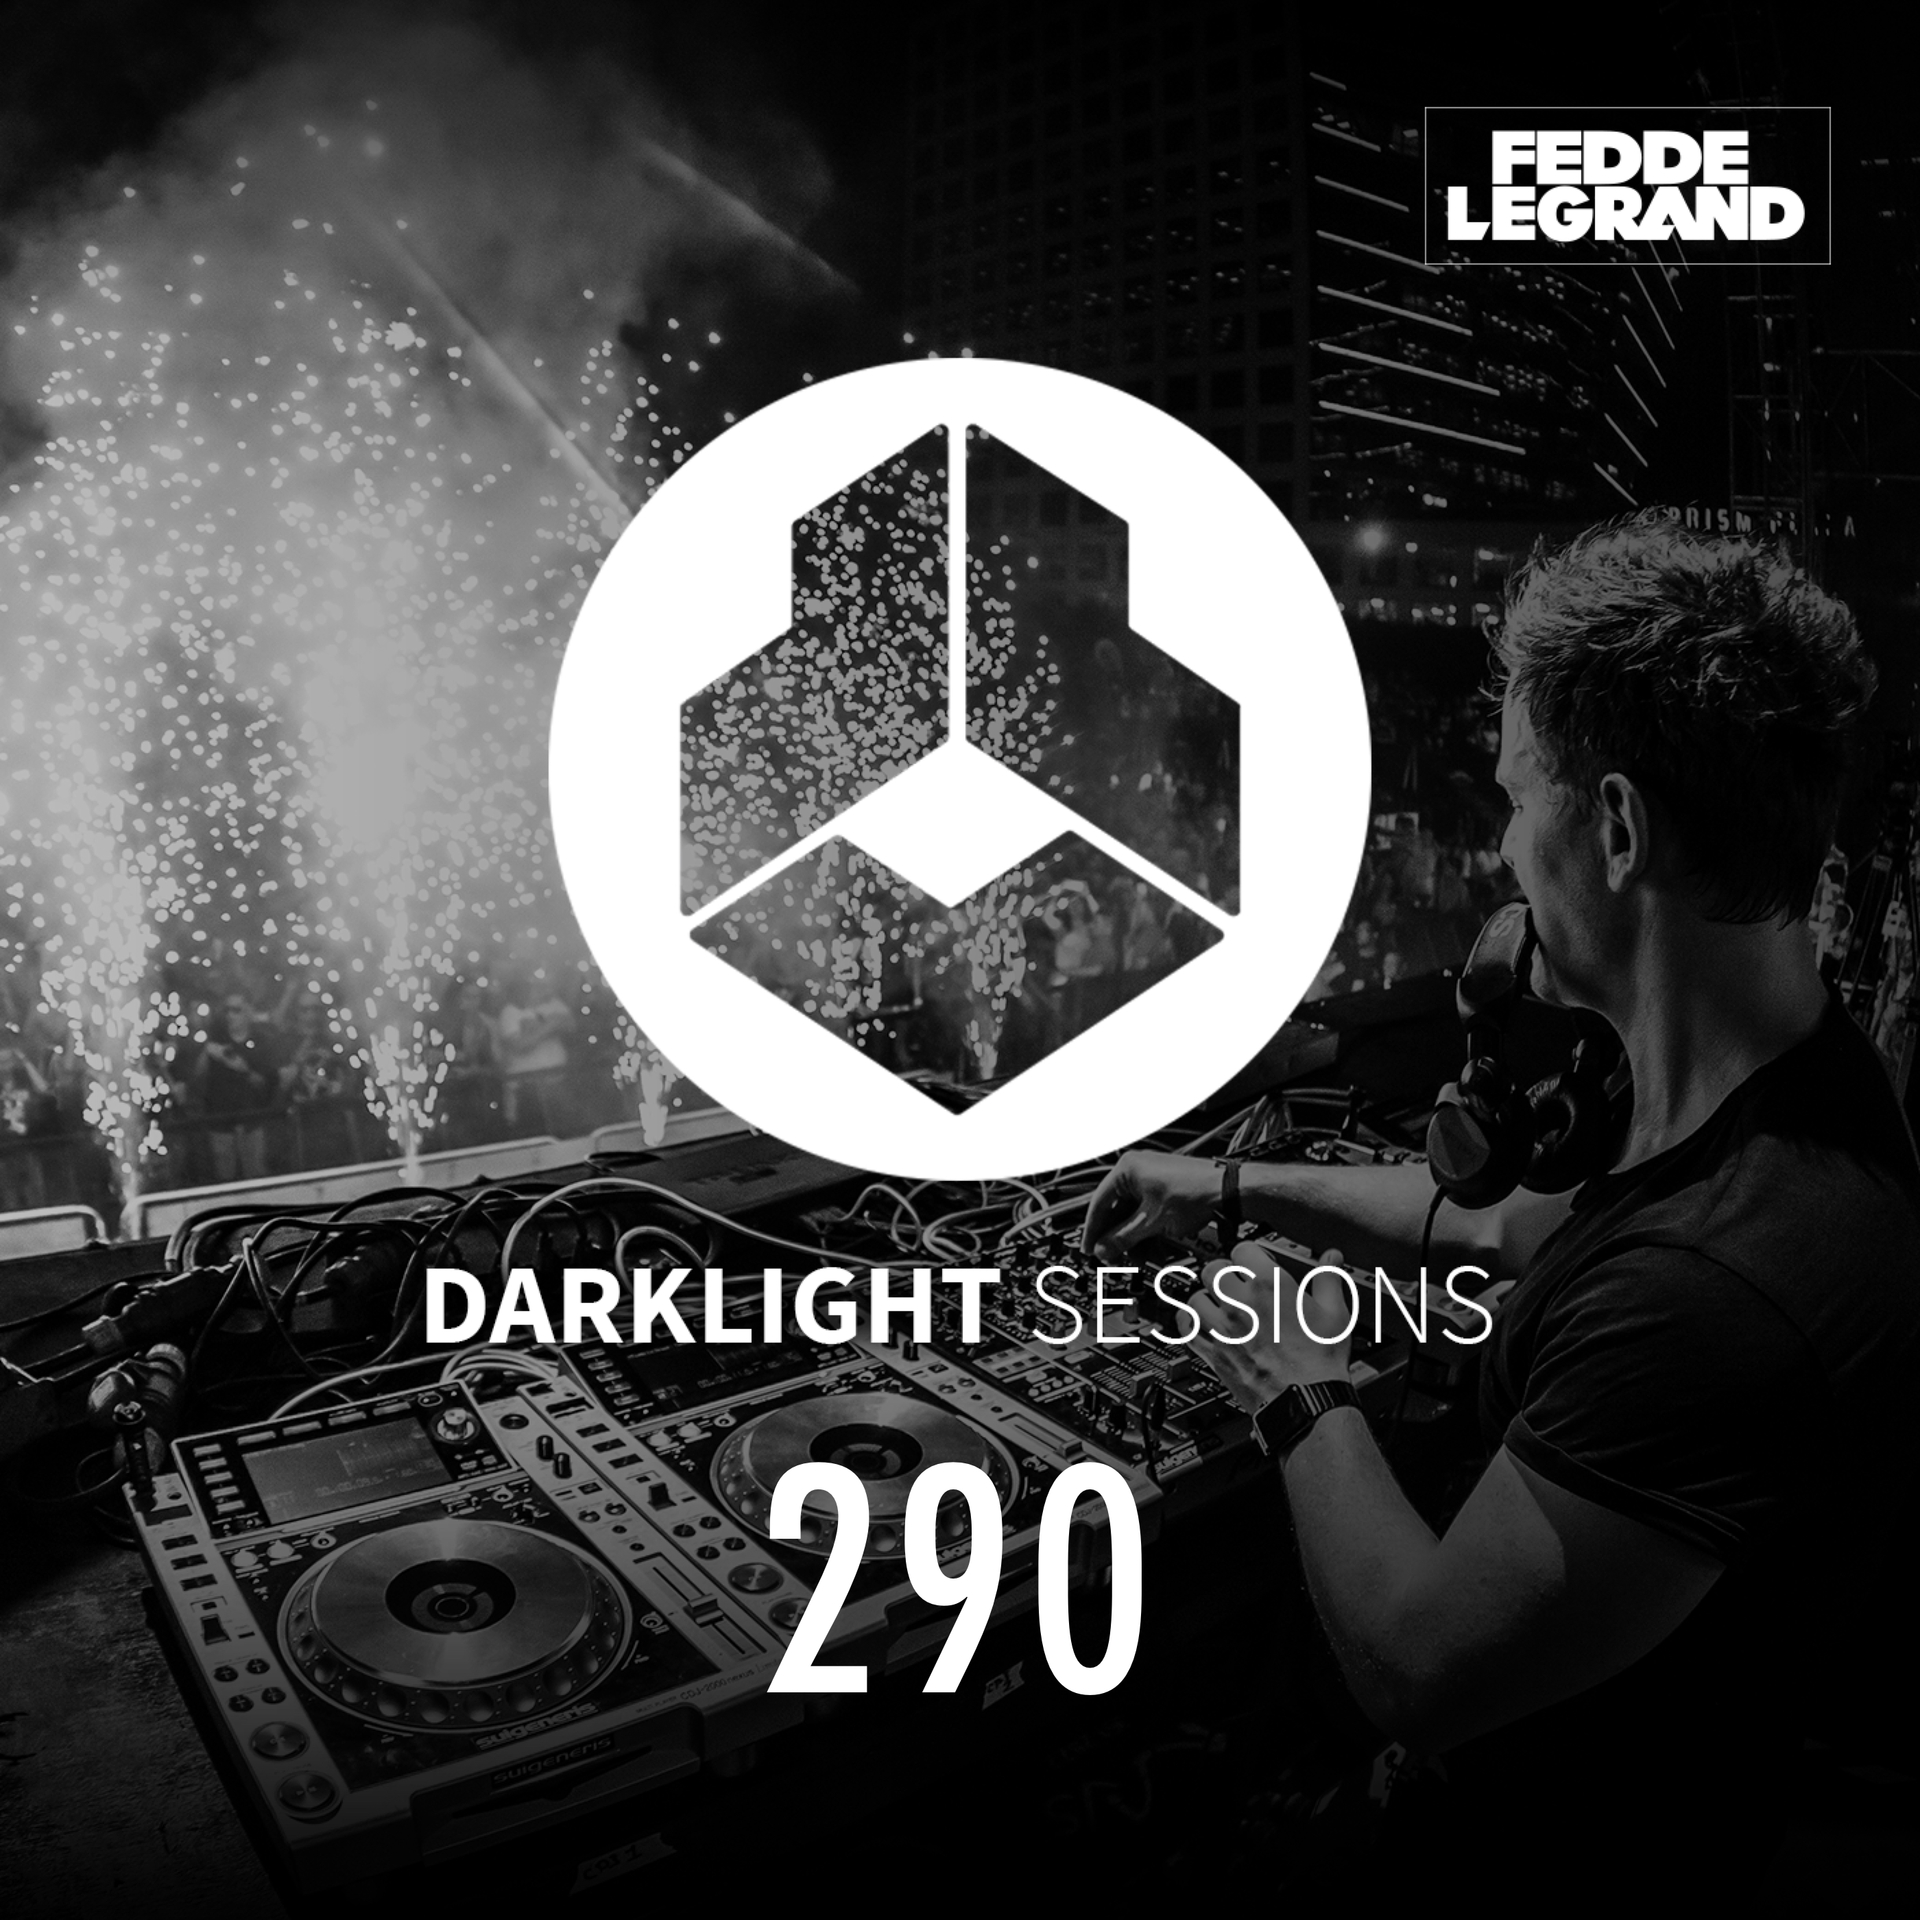 Darklight Sessions 290